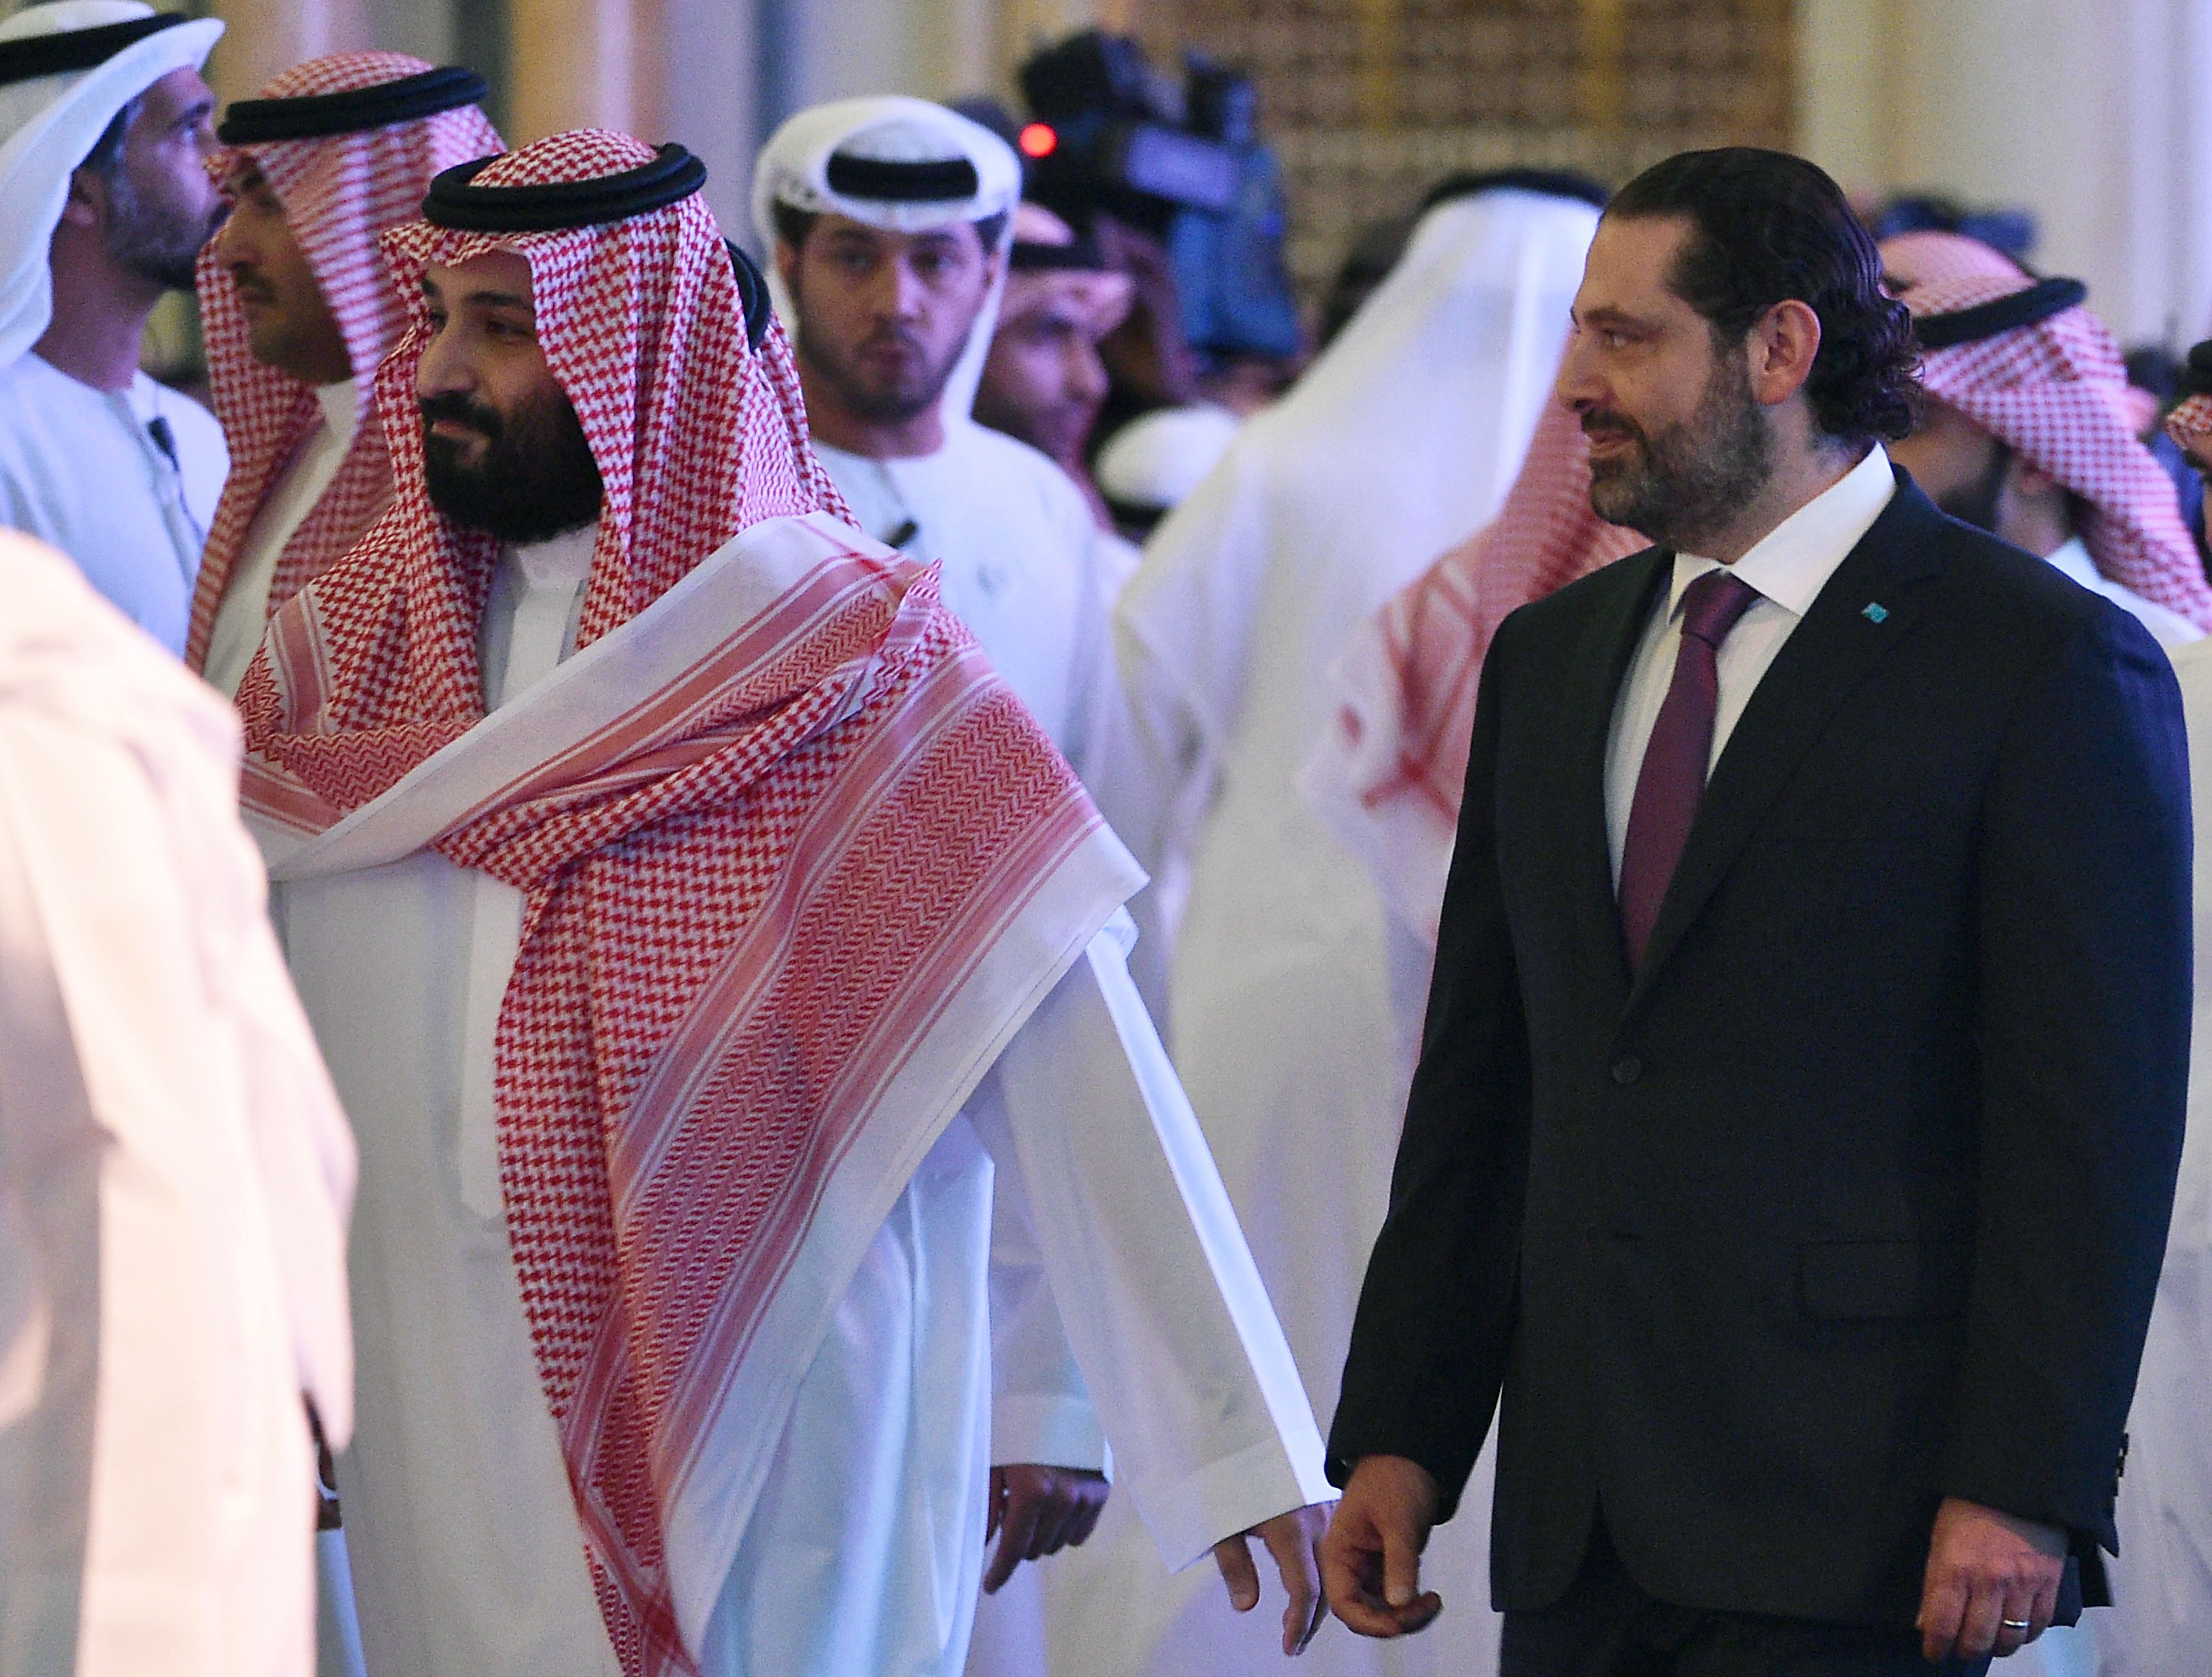 Saudi Crown Prince Mohammed bin Salman, pictured left, arrives with Lebanese Prime Minister Saad Hariri to attend the Future Investment Initiative FII conference in the Saudi capital Riyadh on Wednesday.